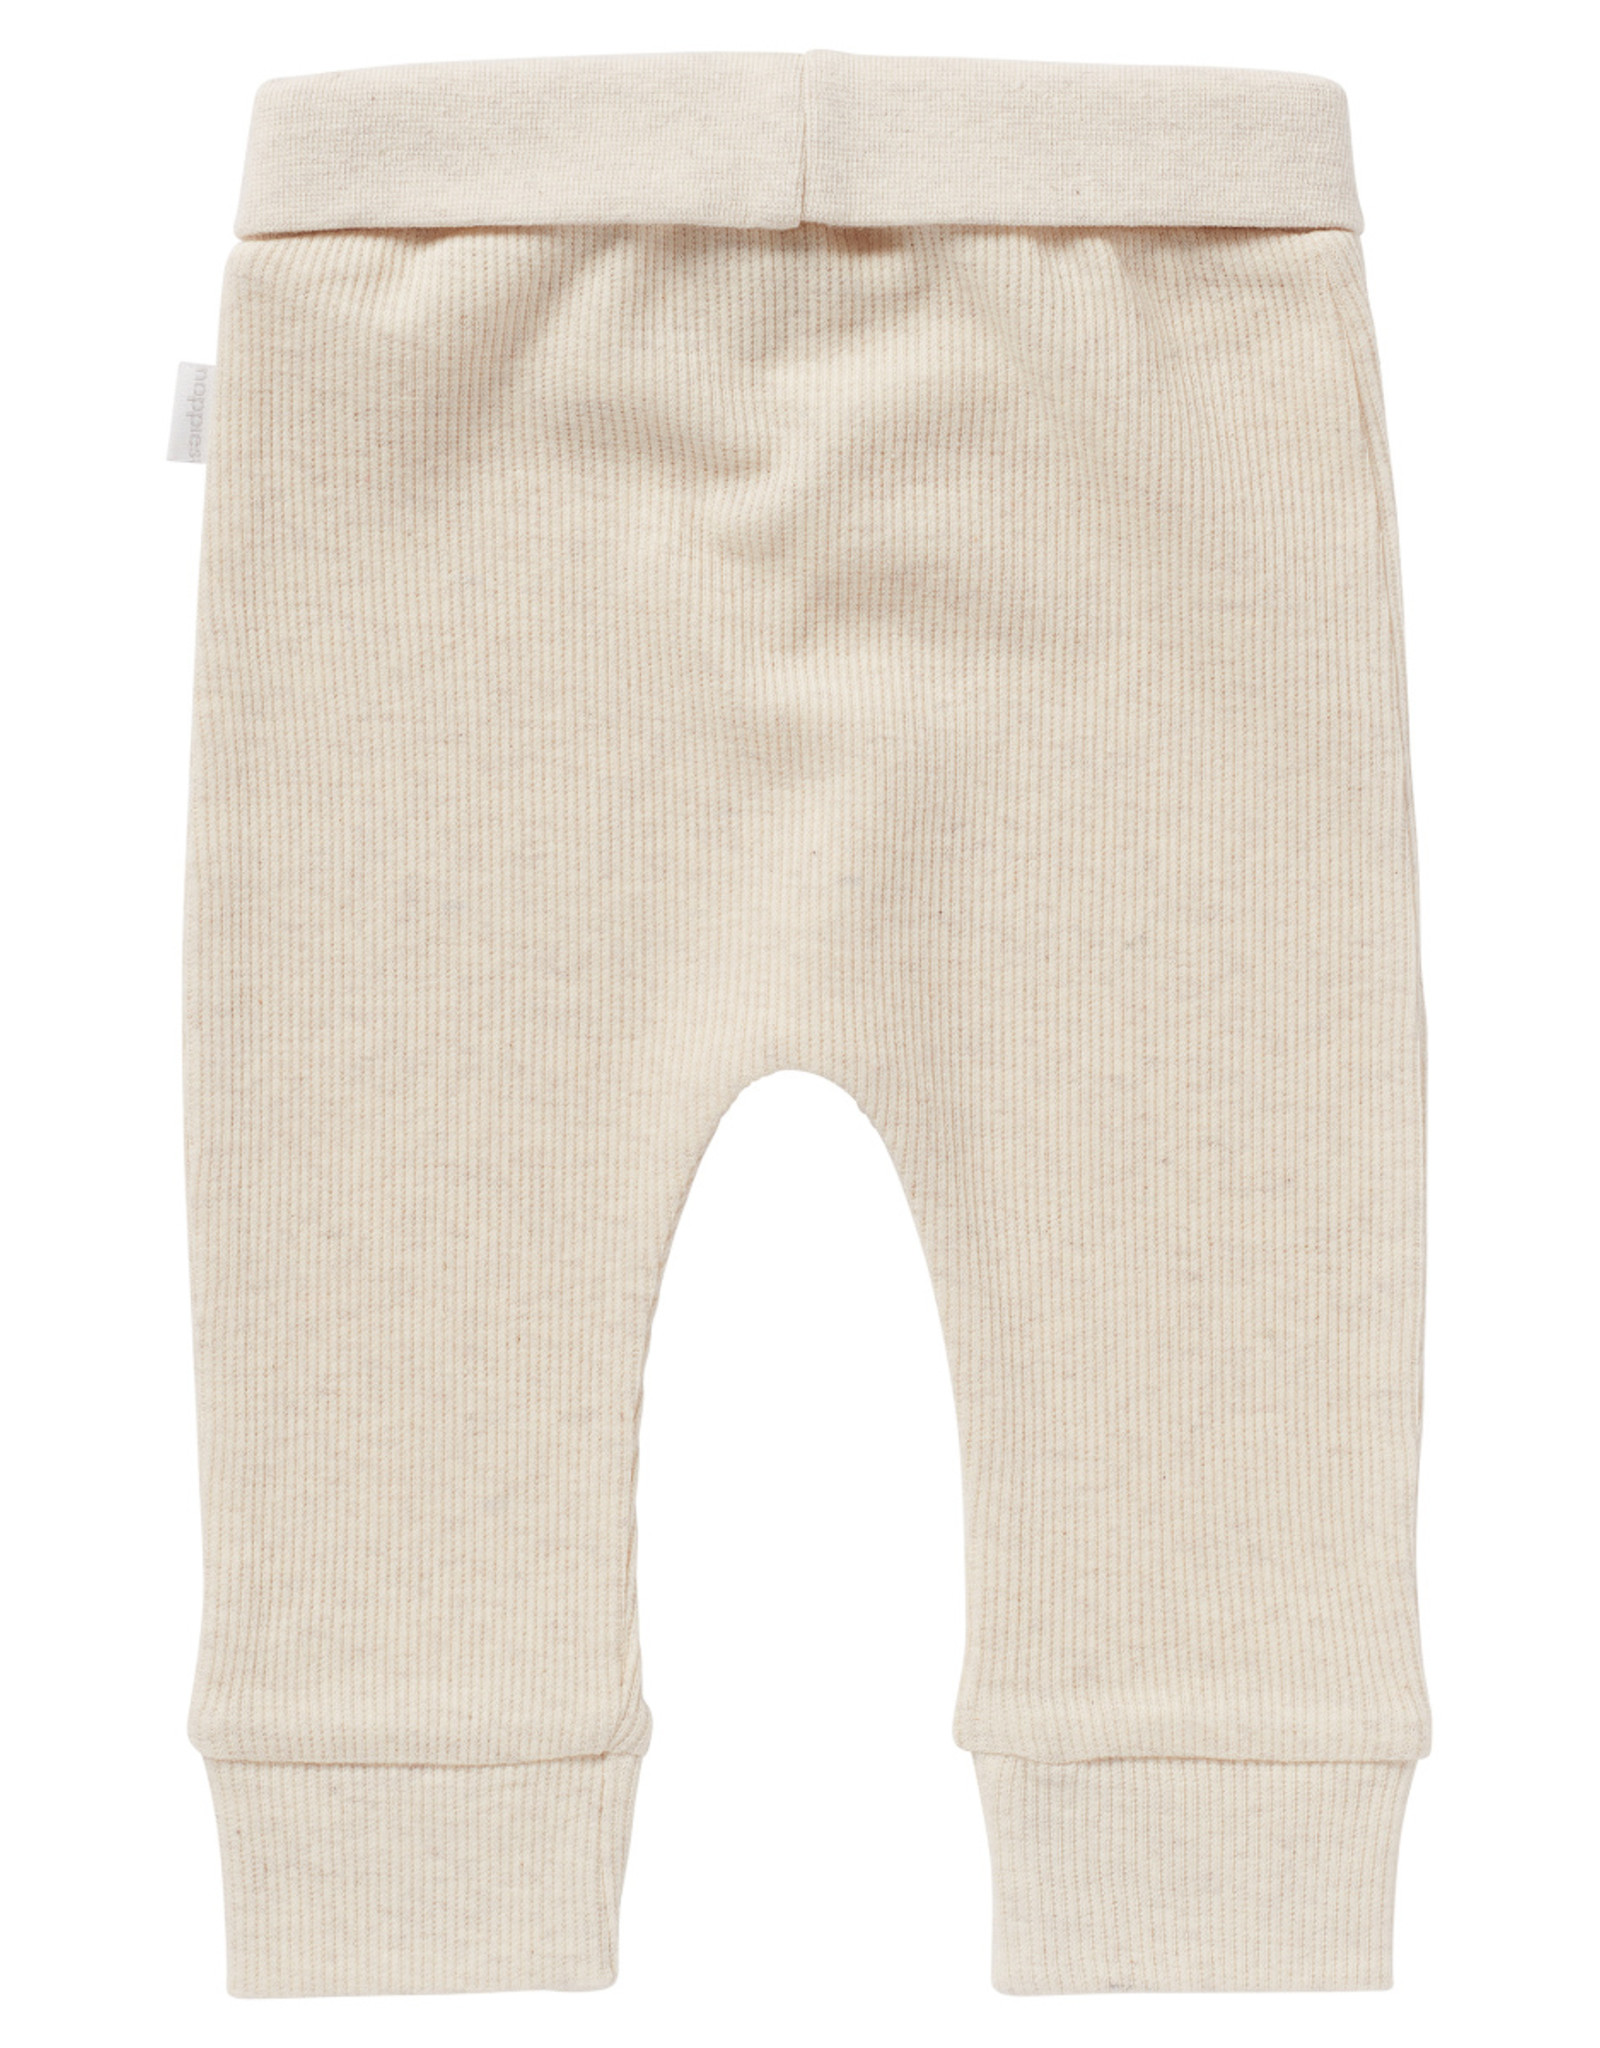 Noppies U Pants comfort Rib Naura Oatmeal